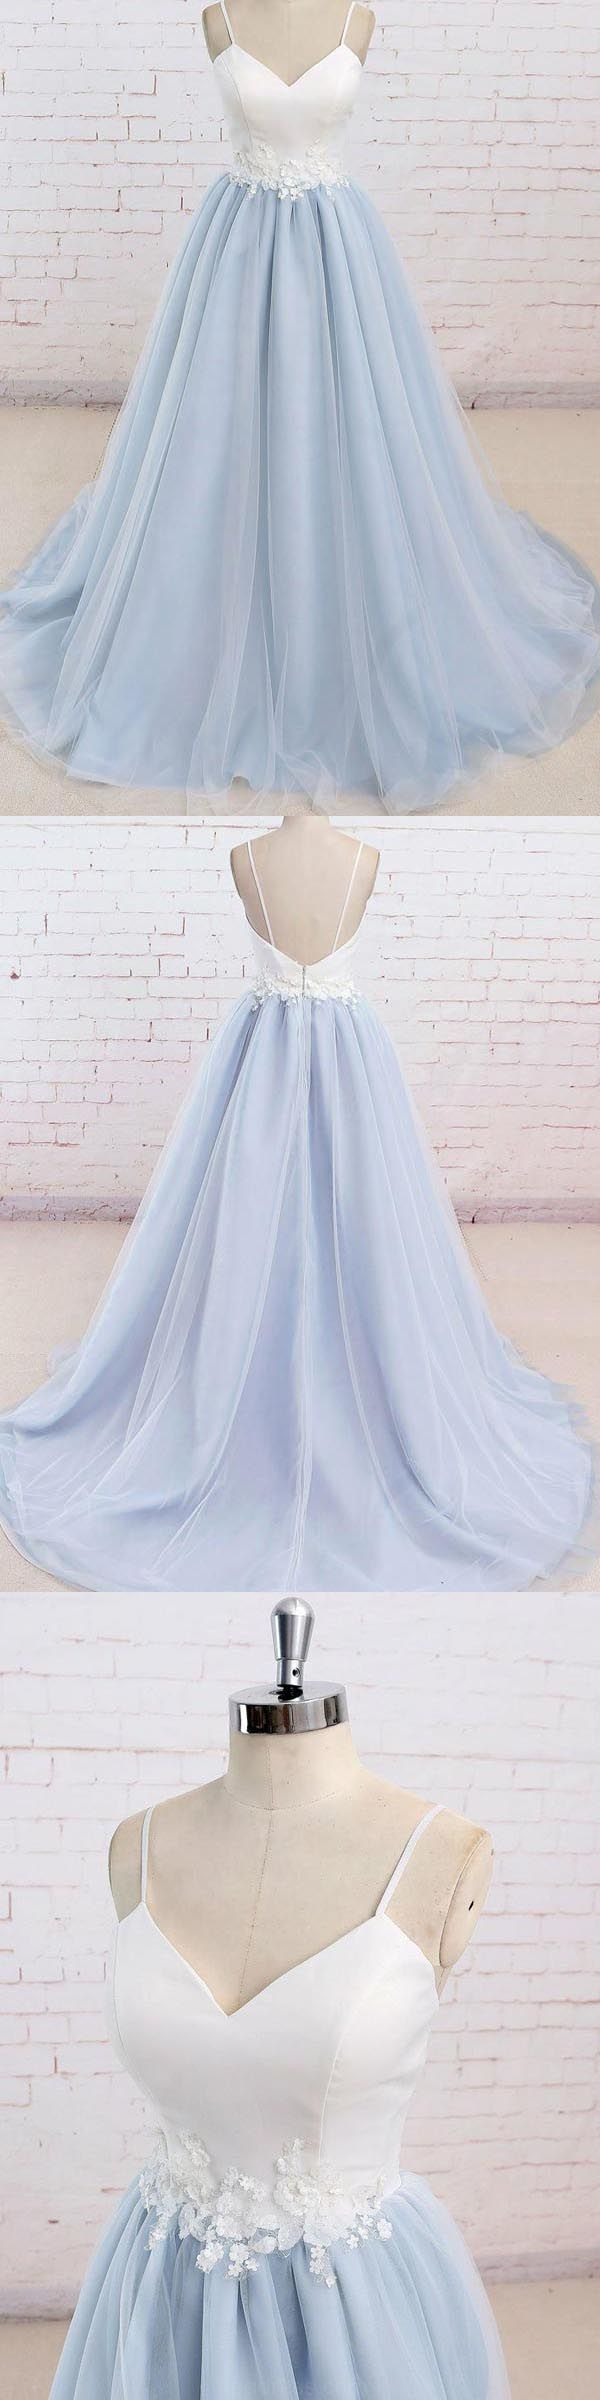 Ball gown prom dresses high low prom dresses prom dresses